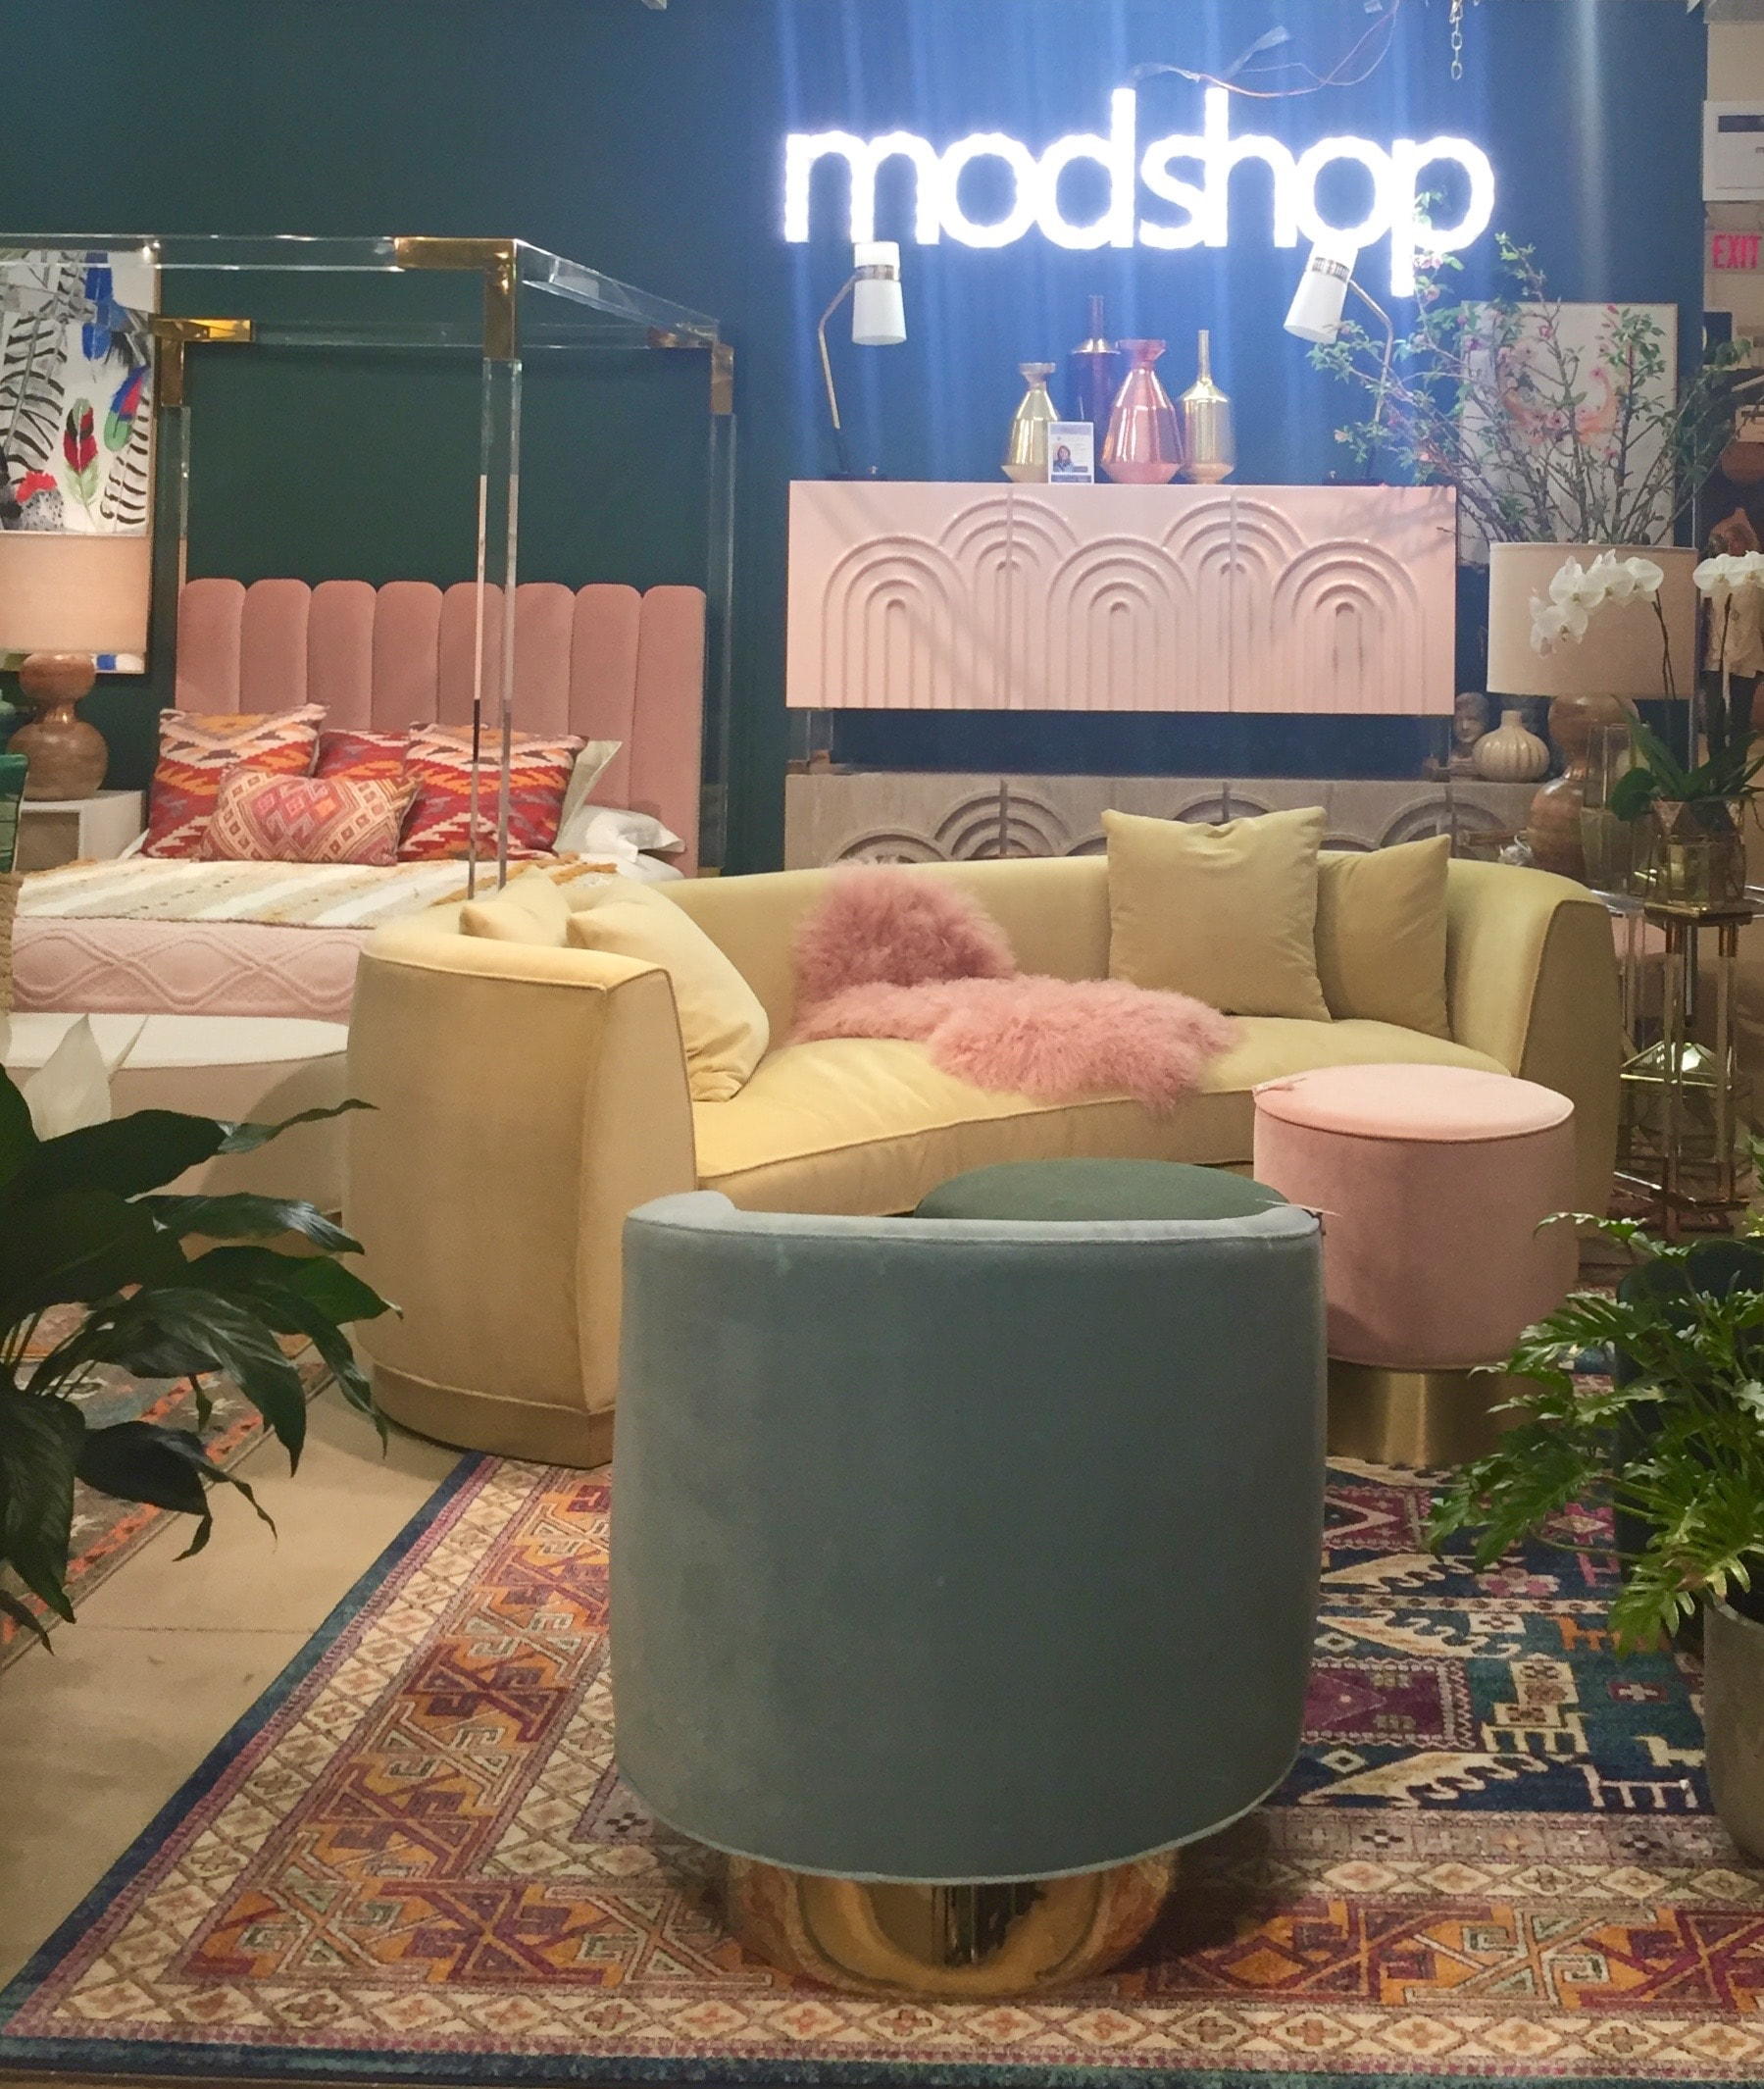 The starlet canopy bed your met previously makes a cameo appearance here thanks to that headboard. Channels. At Modshop.